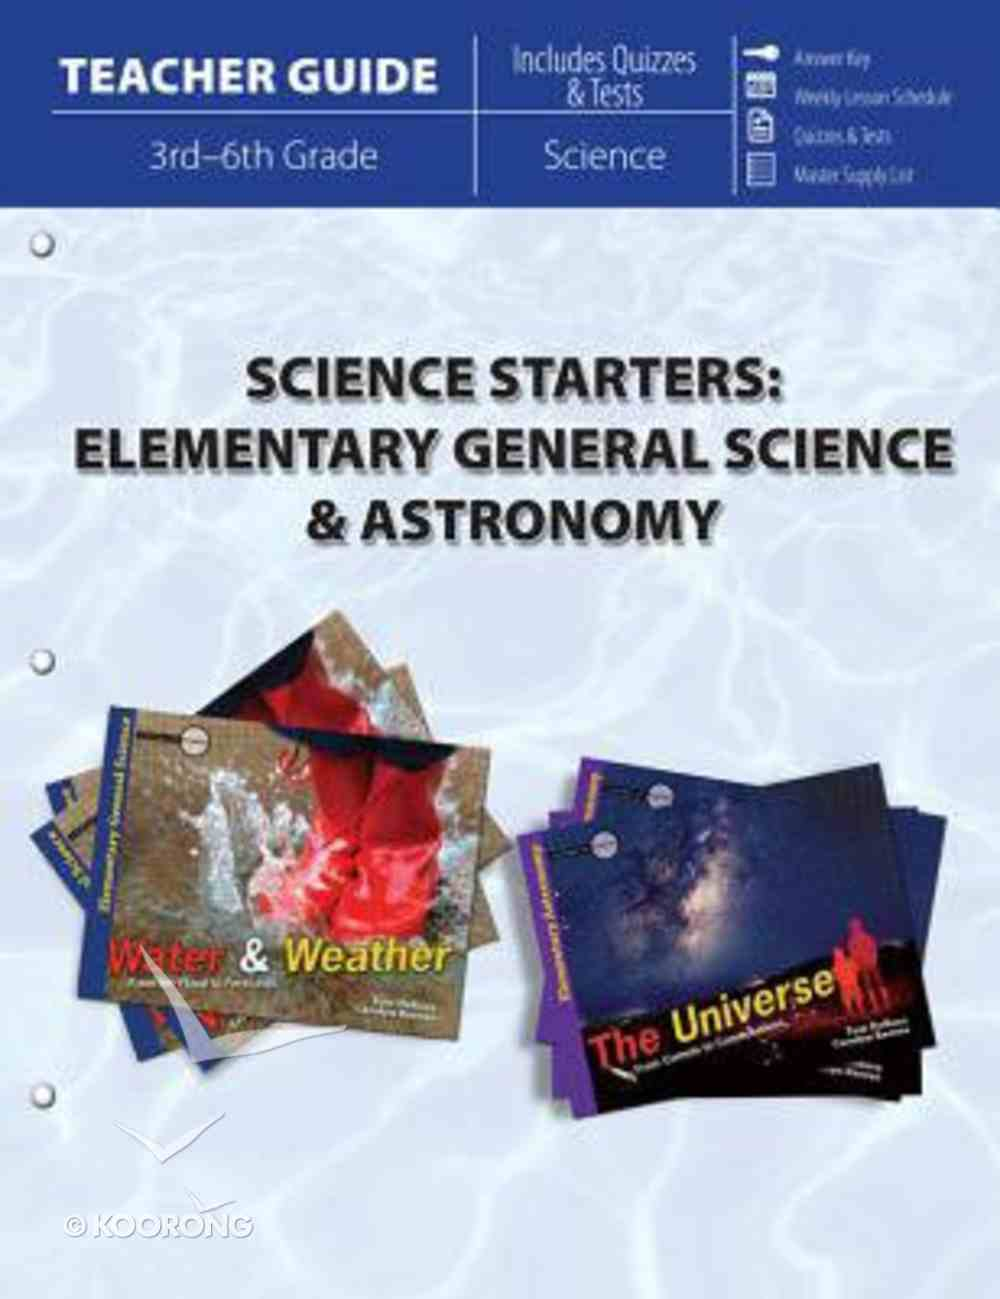 Escs: Science Starters - Elementary General Science & Astronomy (Teacher Guide) Paperback